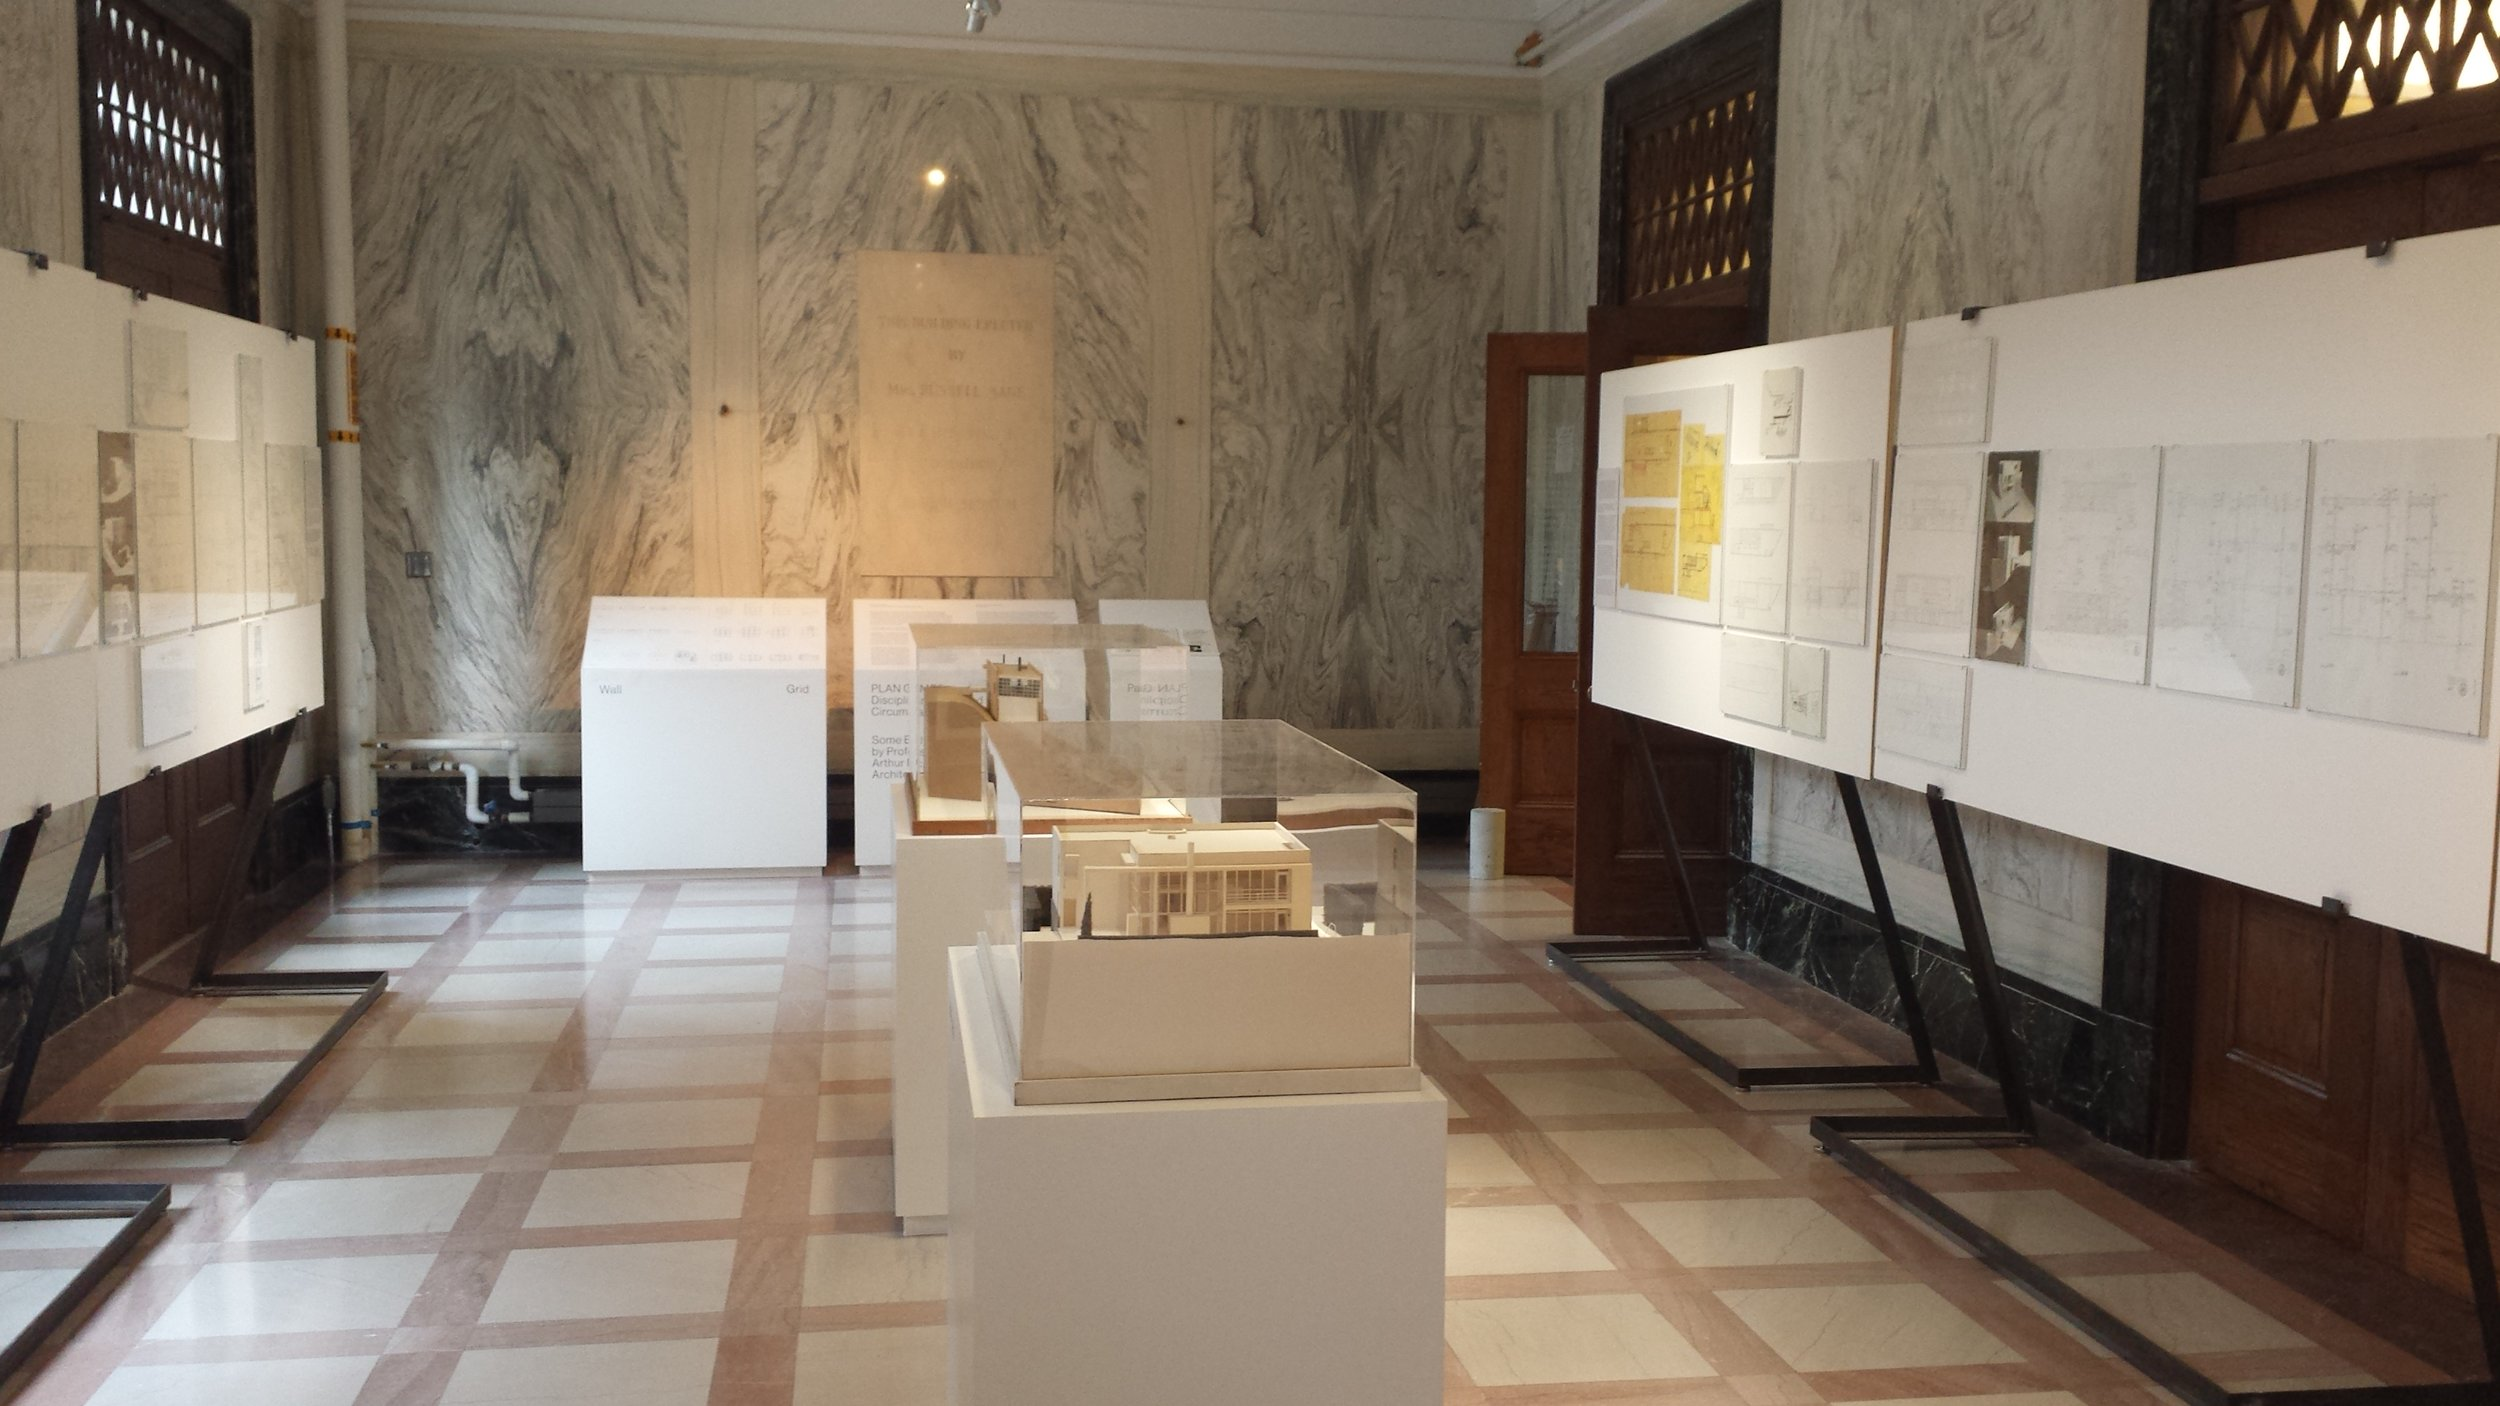 'Plan Games' Exhibition, 2015